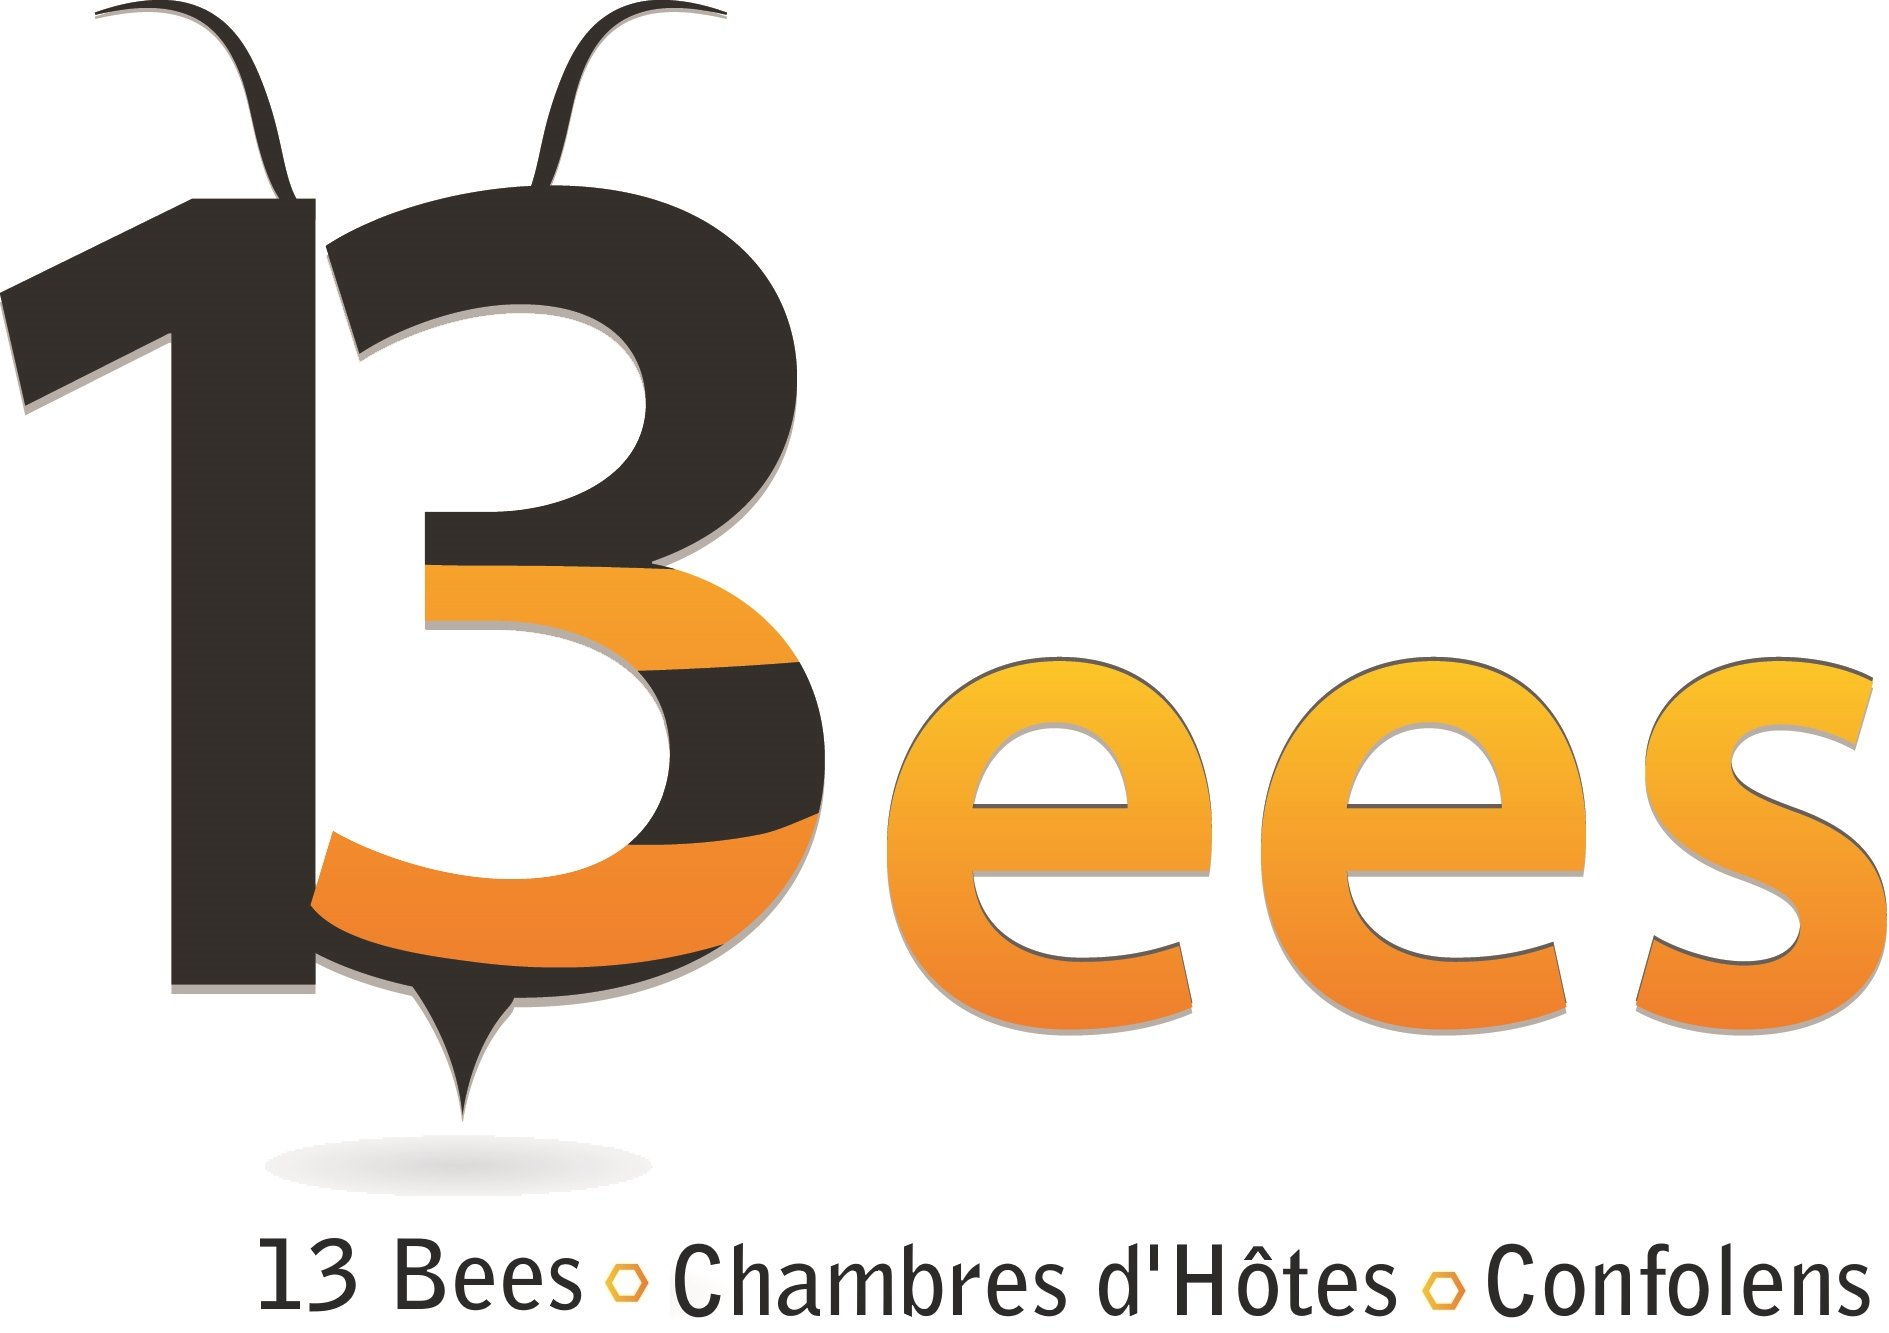 La Chambre Wellington Boots 13 Bees Beekeeping Experiences And Beekeeping Holidays